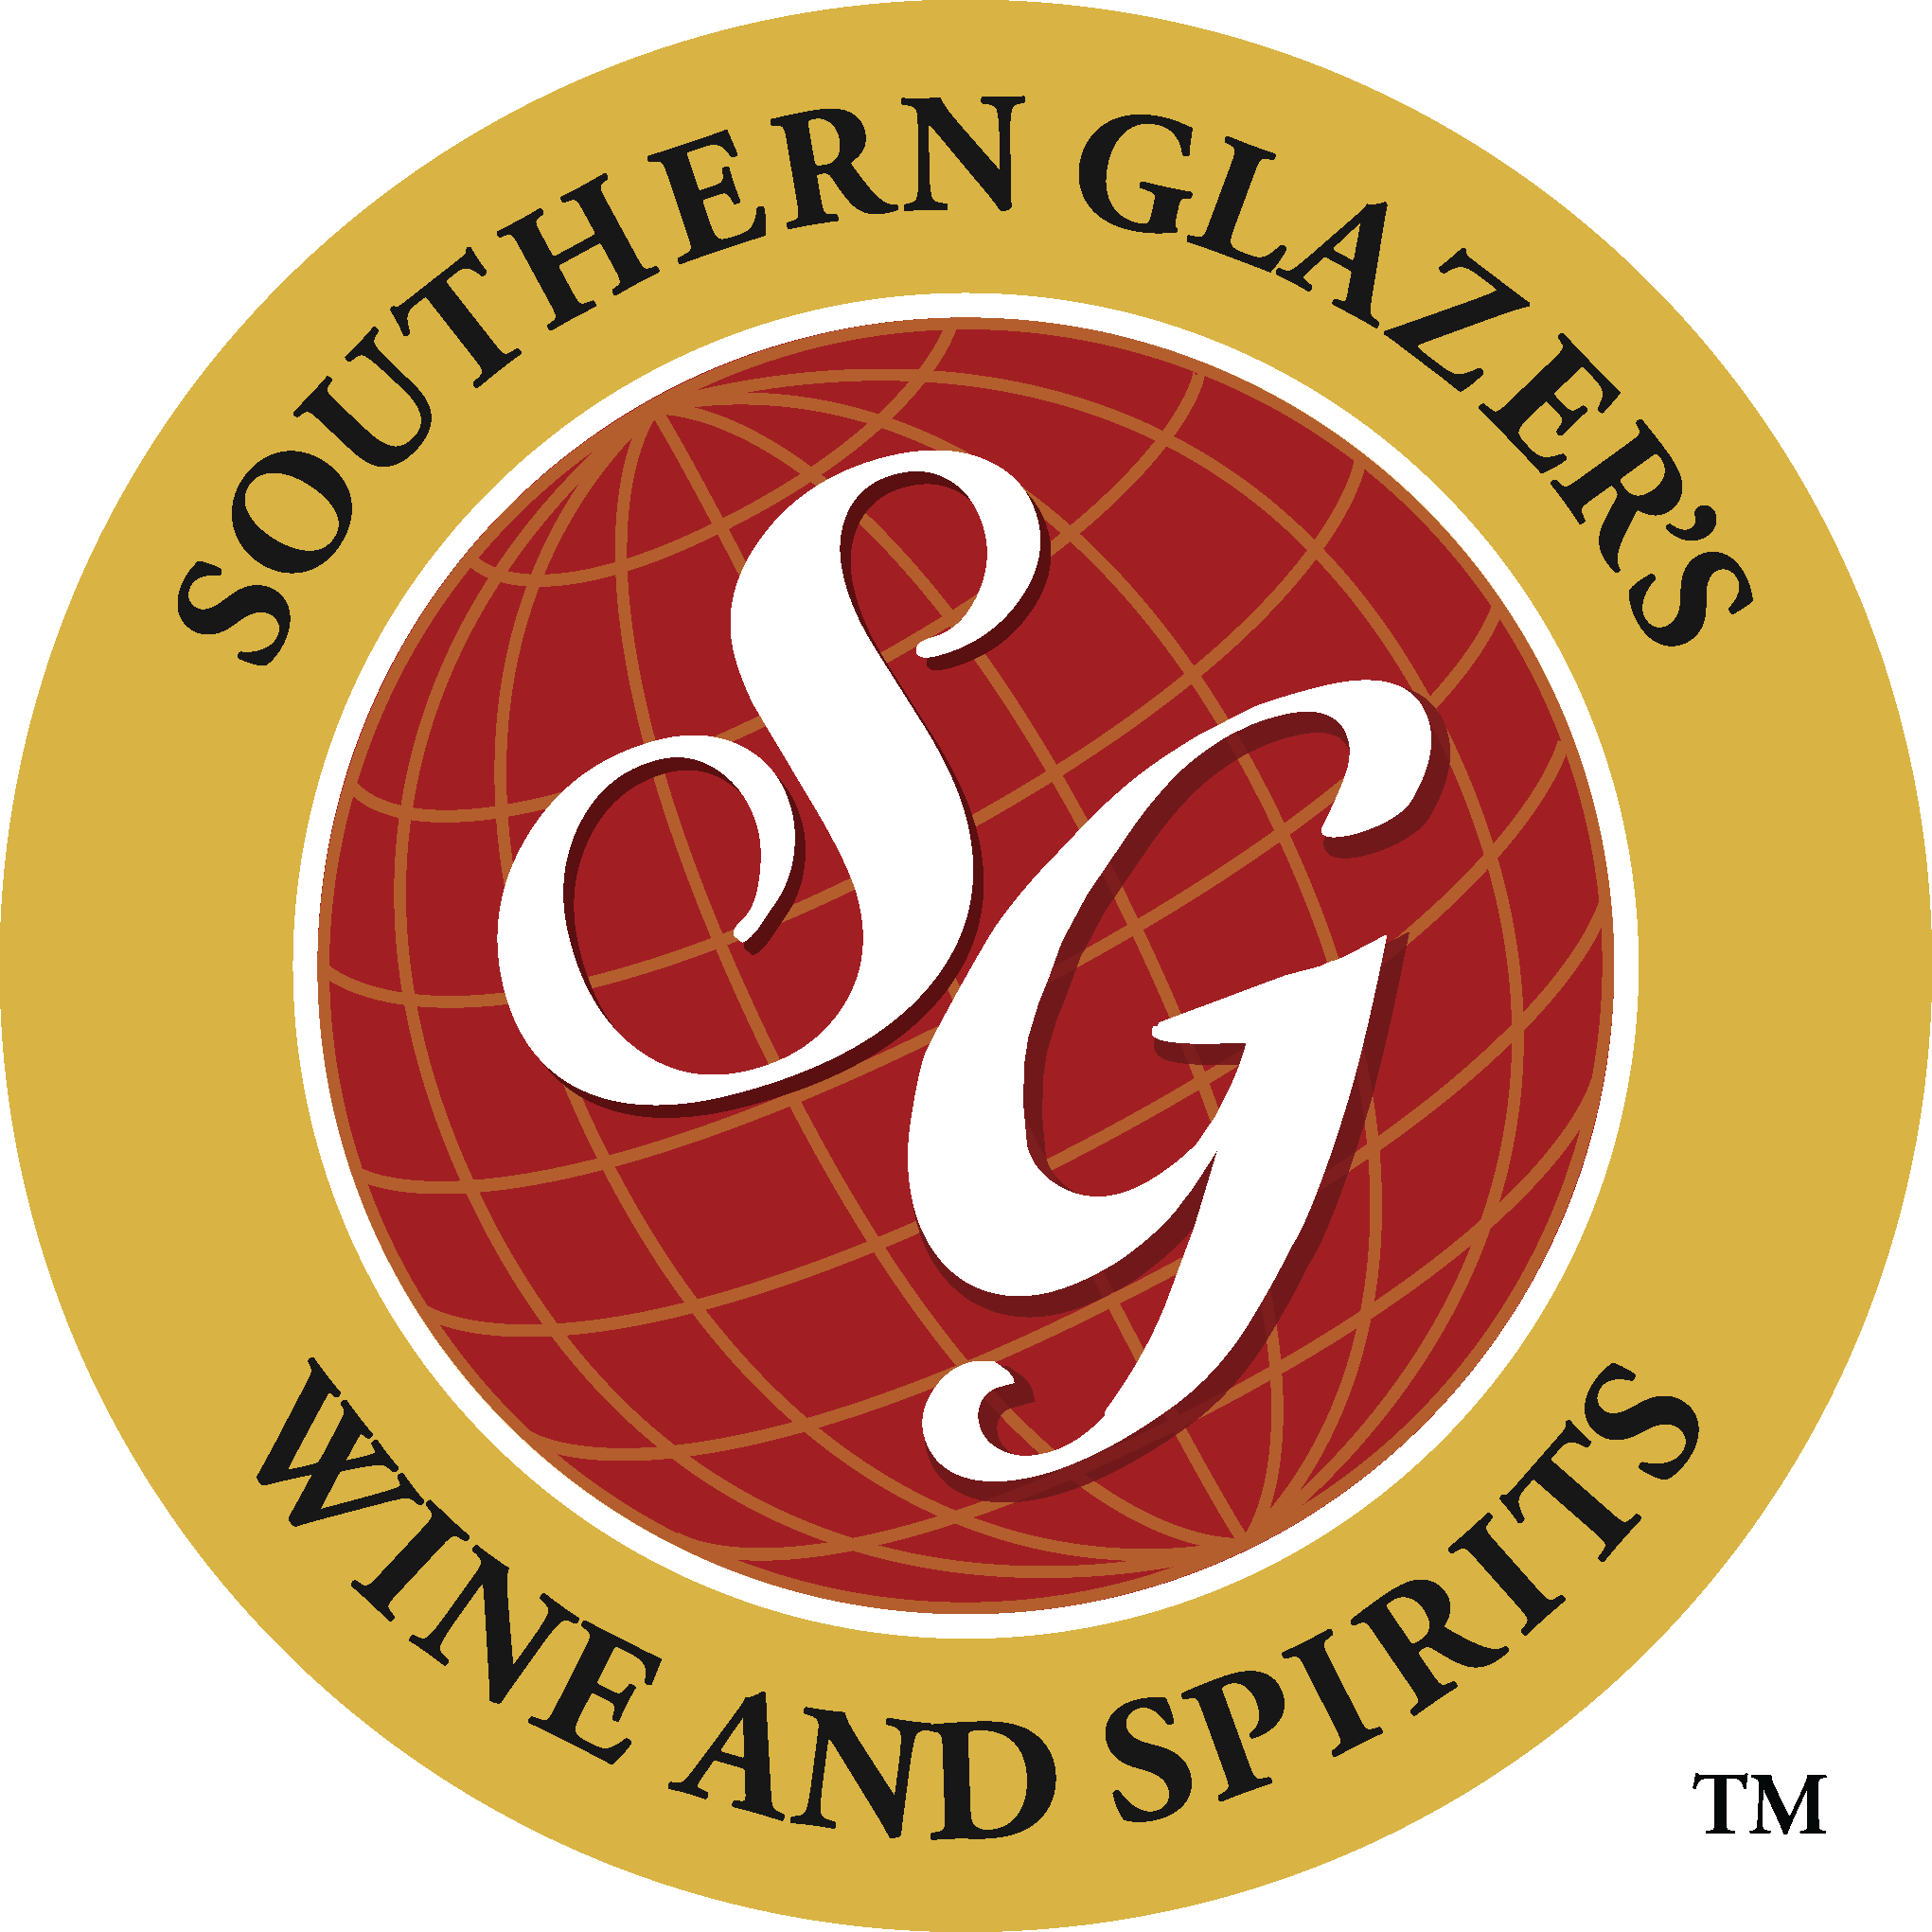 Southern Glazers Seal.png